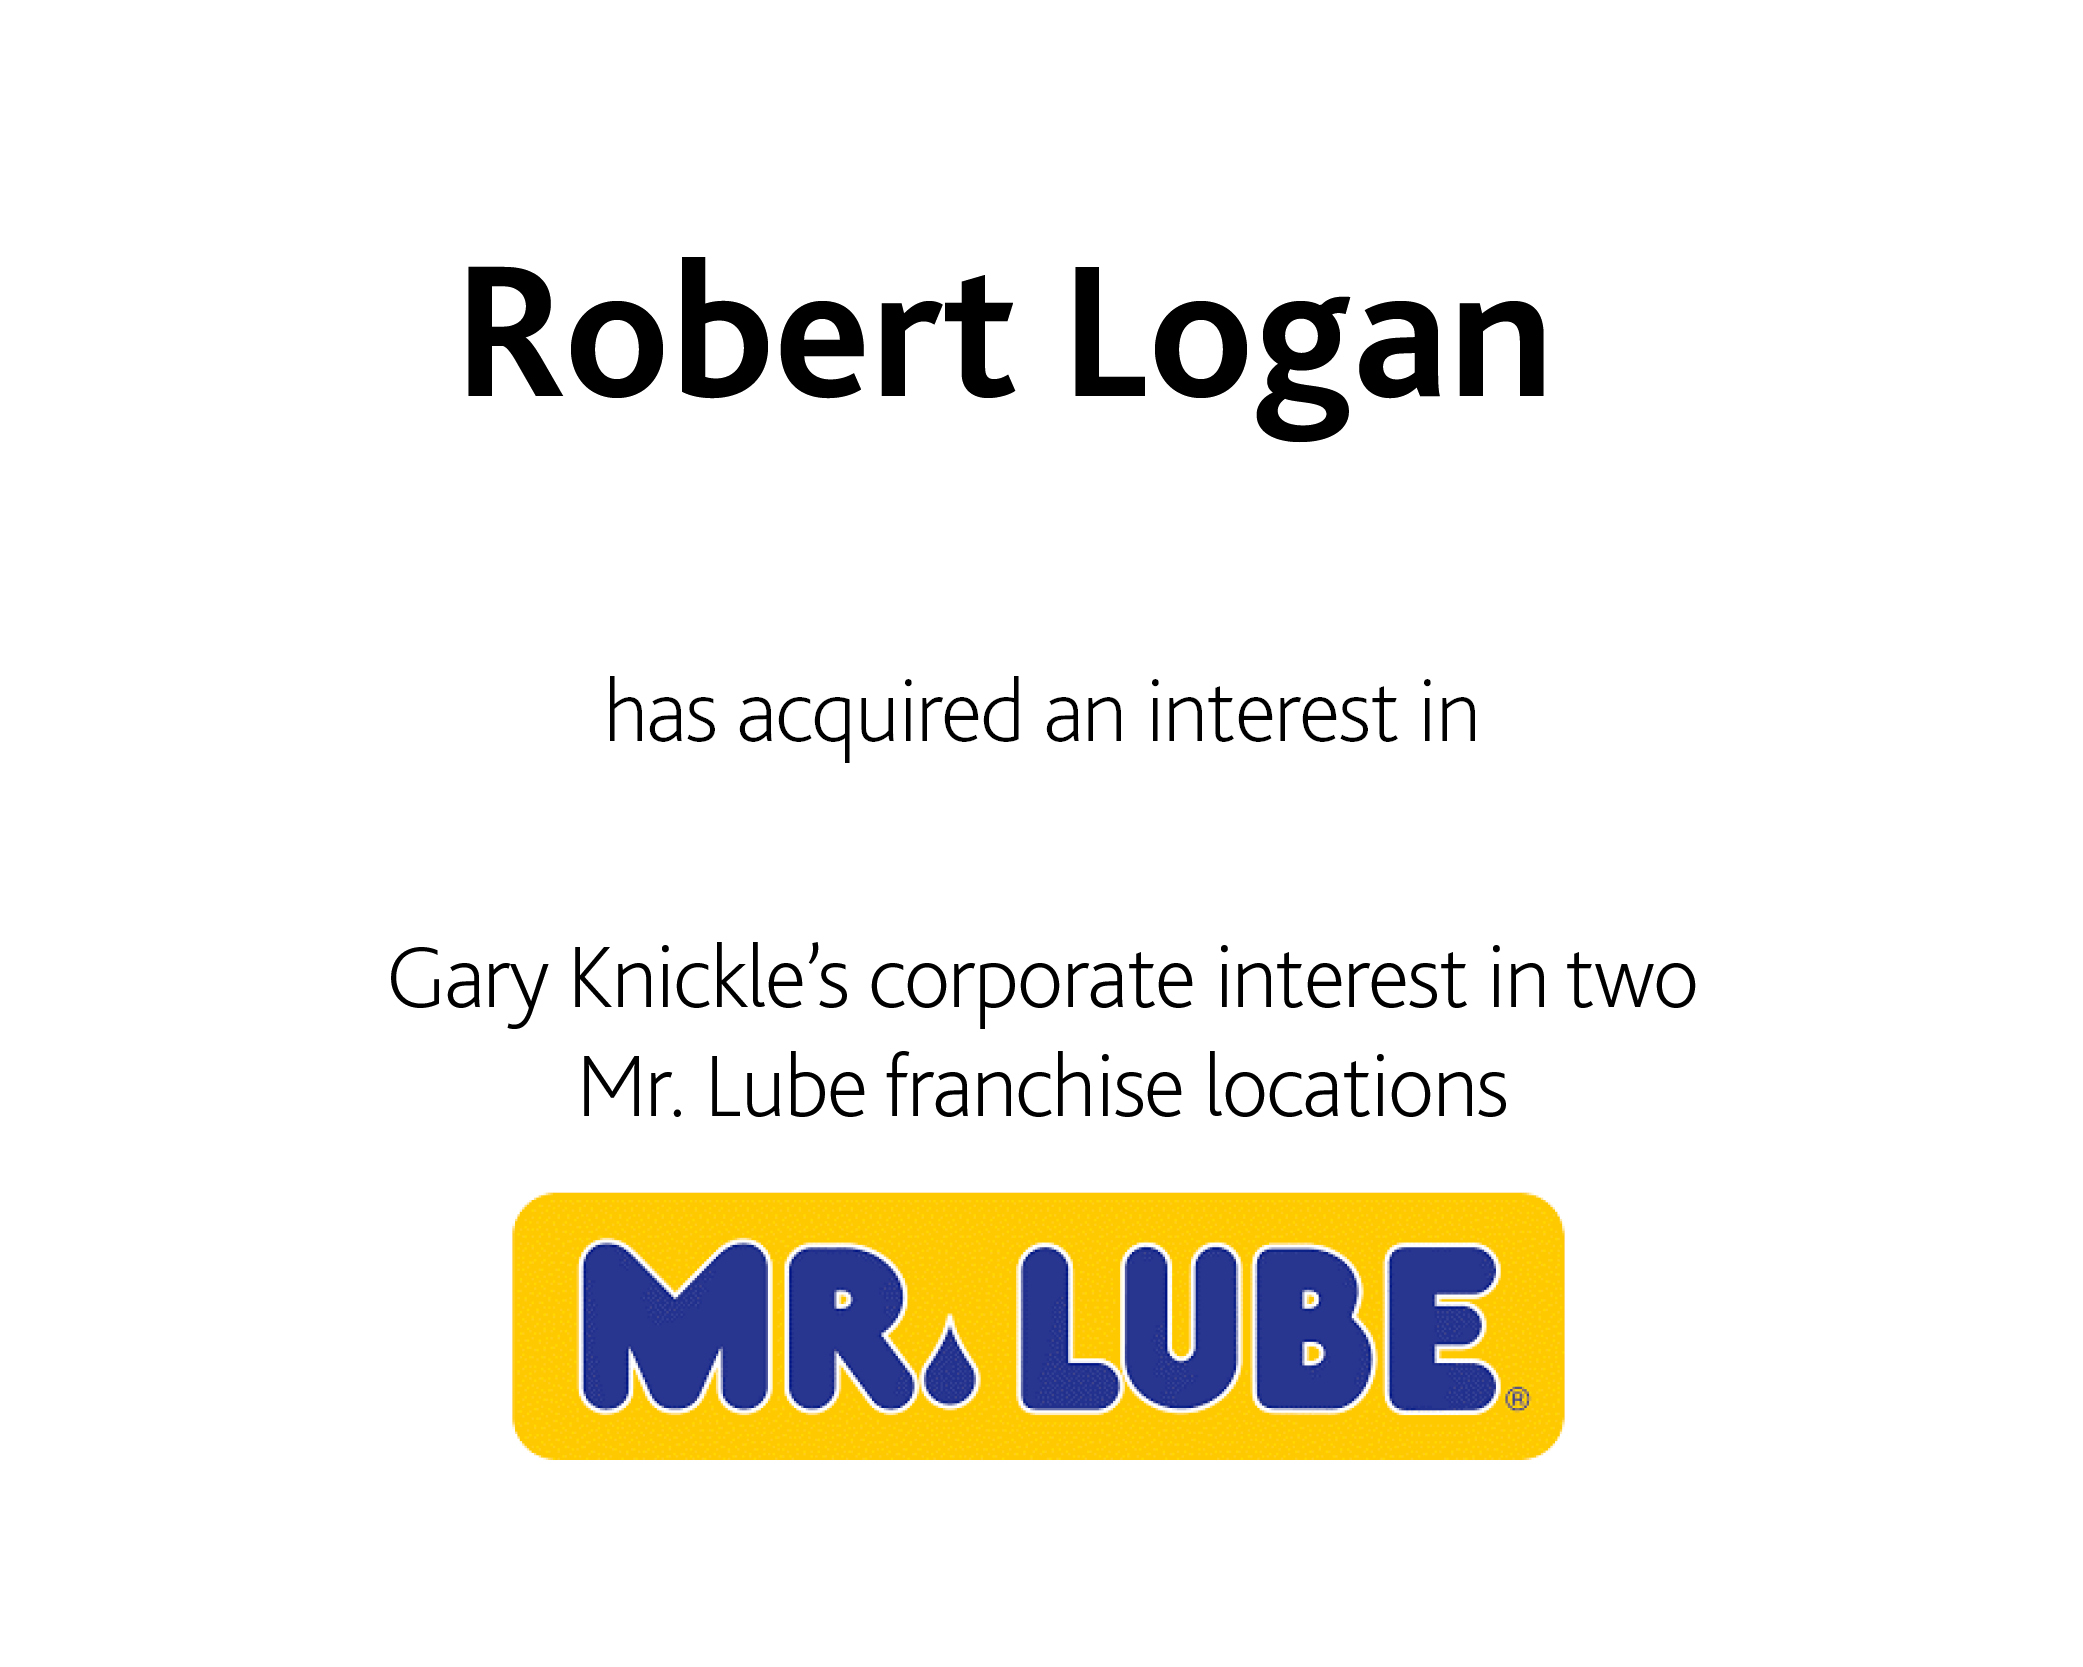 Robert Logan has acquired an interest in Gary Knickle's corporate interest in two Mr. Lube franchise locations